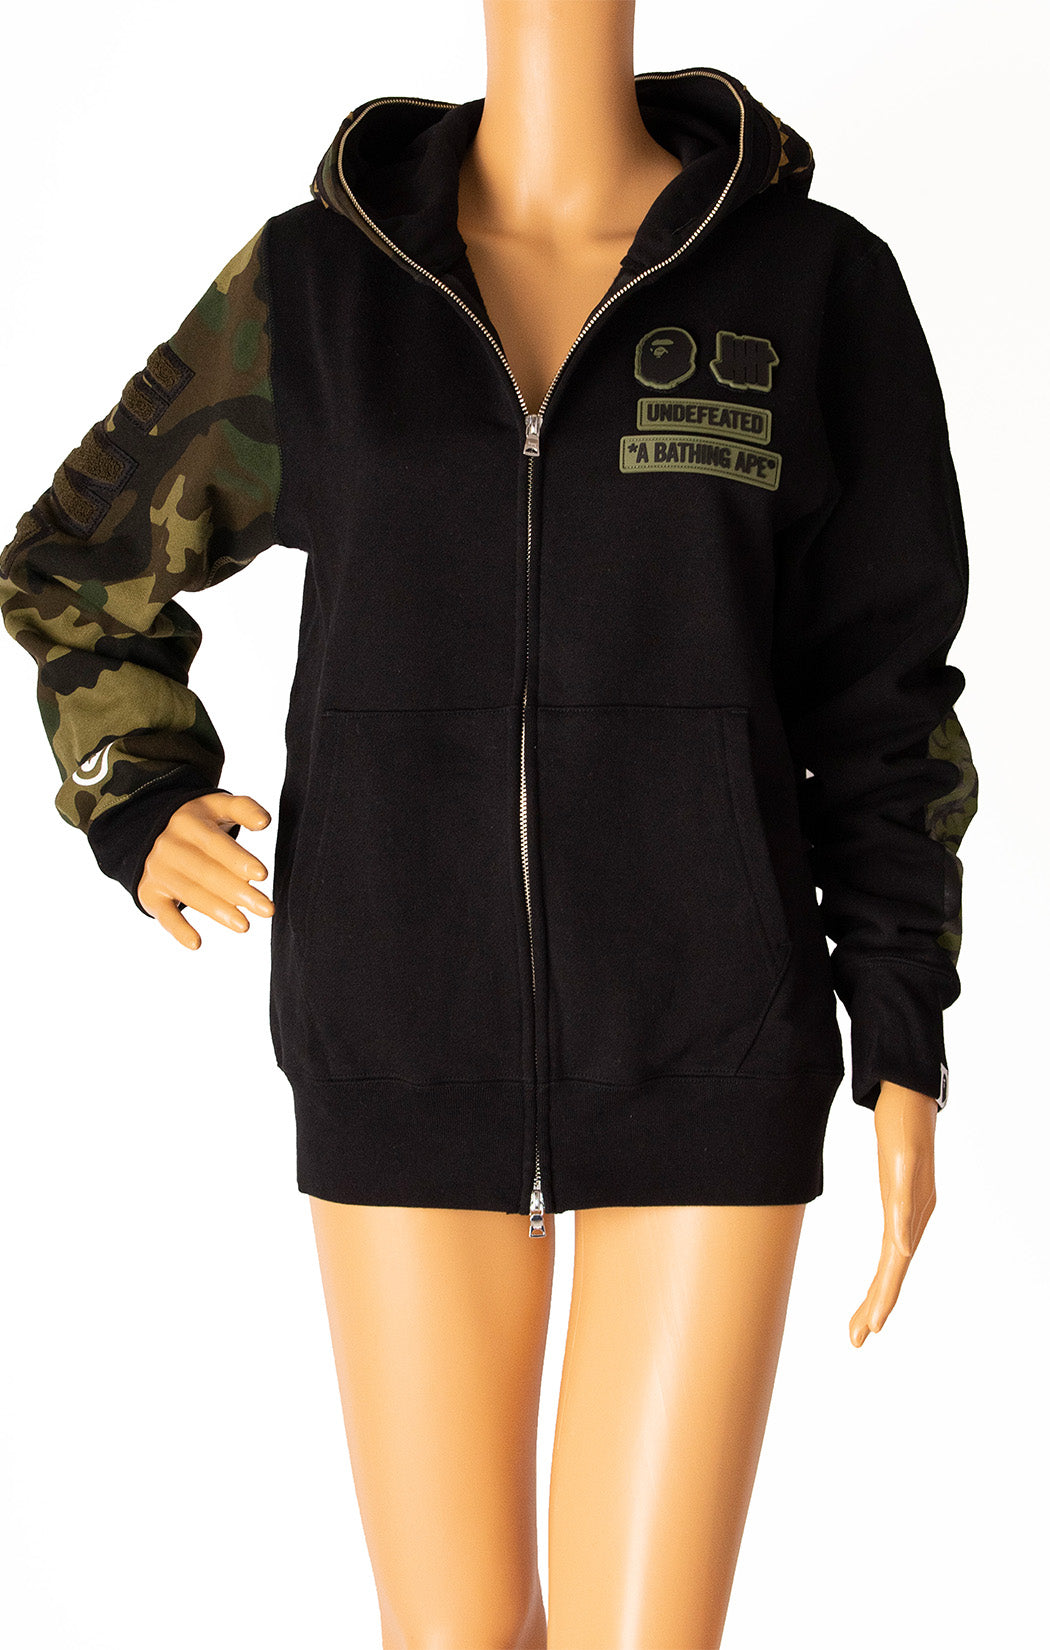 Front view of A BATHING APE with tags Sweatshirt Size: Medium